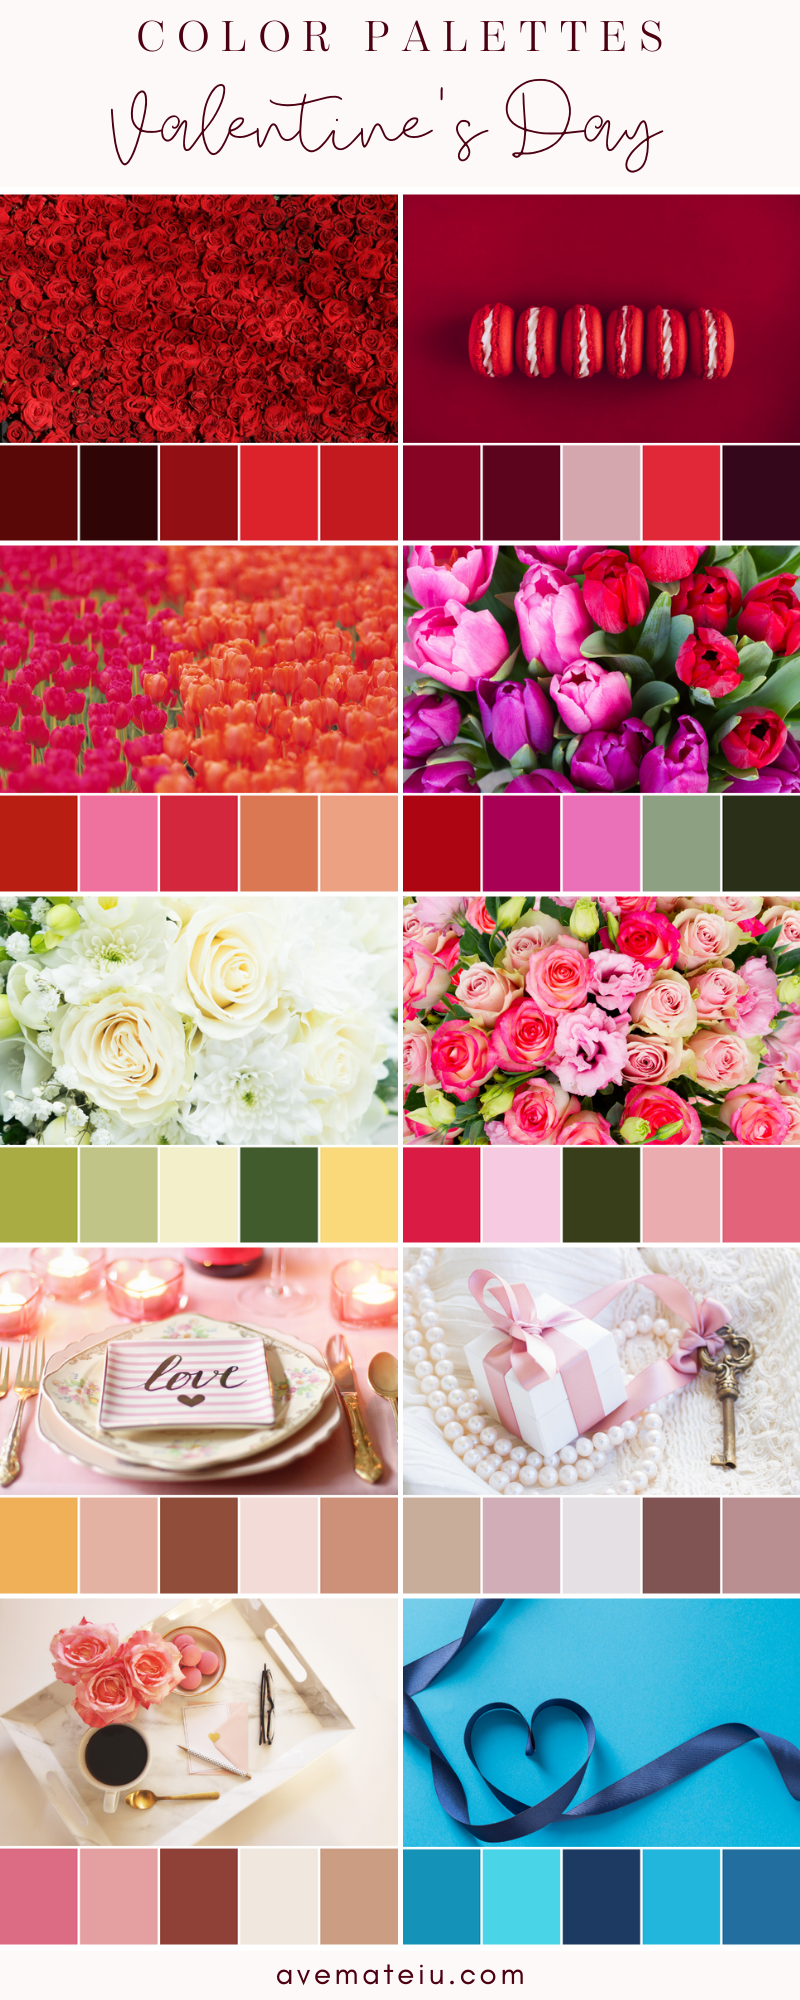 Christmas Colors Palette 2020 Canva WordPress.in 2020   Christmas color palette, Color palette